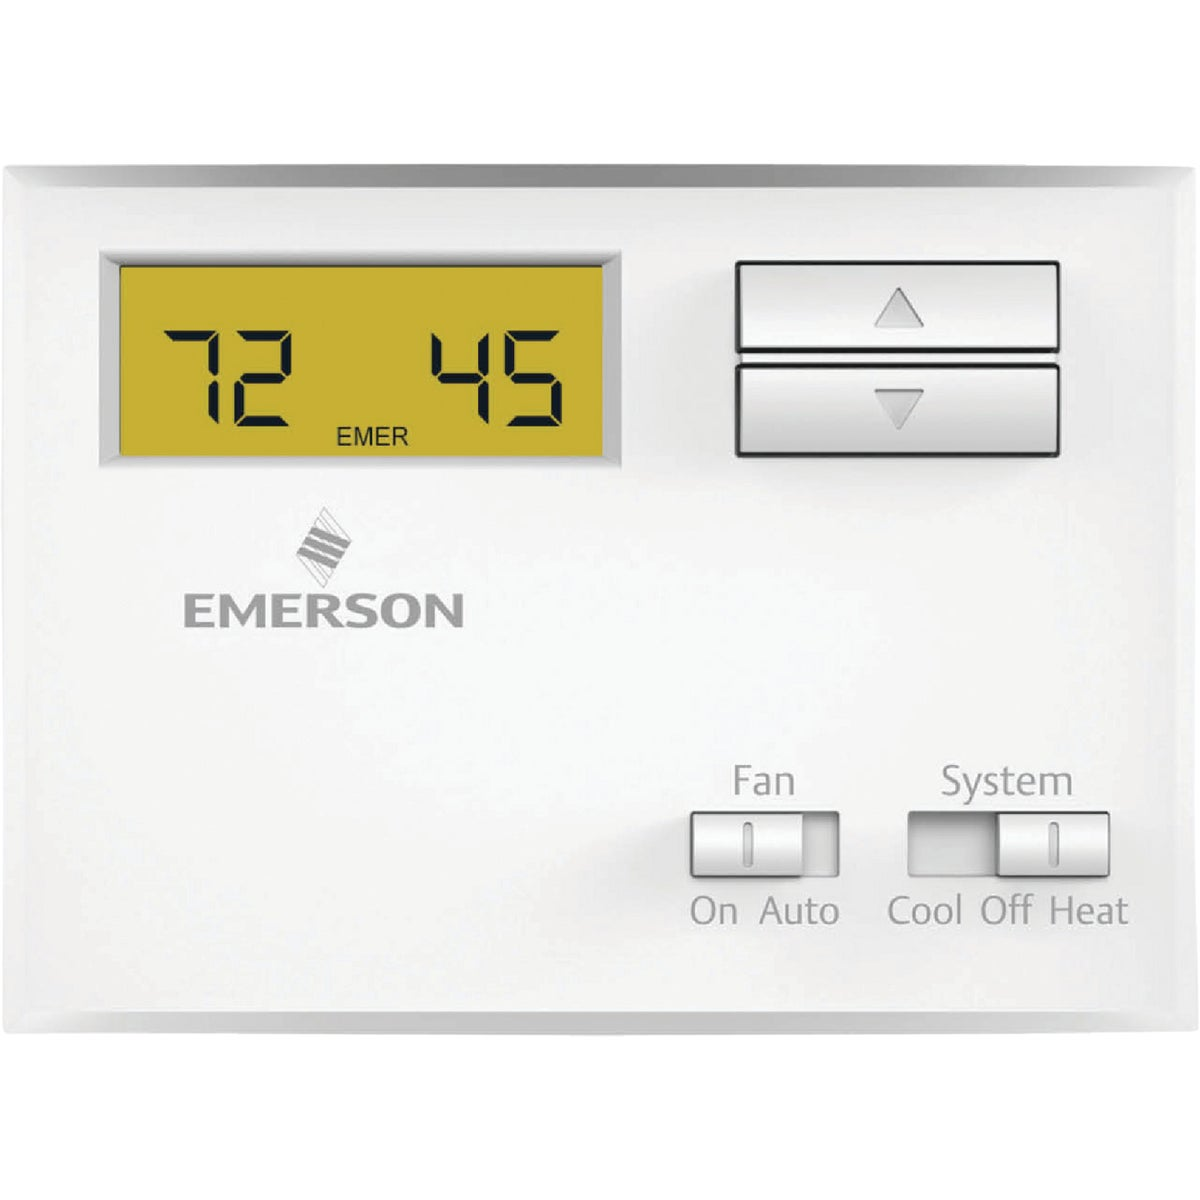 DIGITAL THERMOSTAT - NP100 by White-Rodgers/Emerson